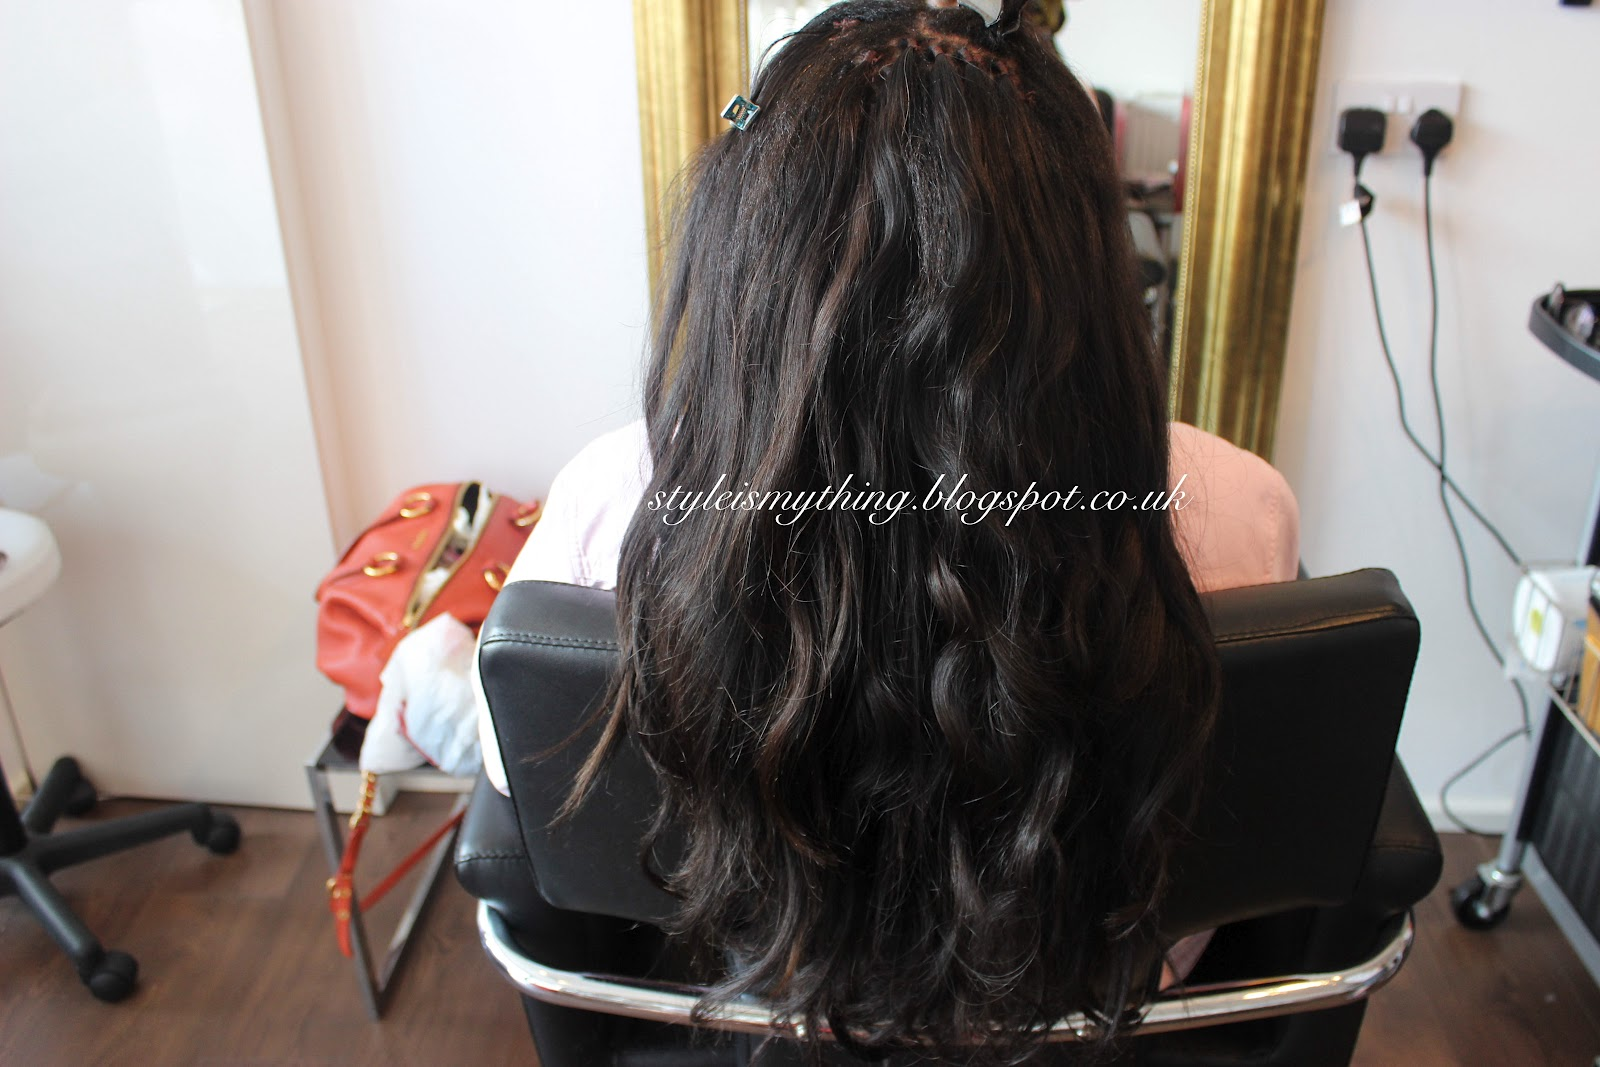 Brazilian Knots hair Extensions "